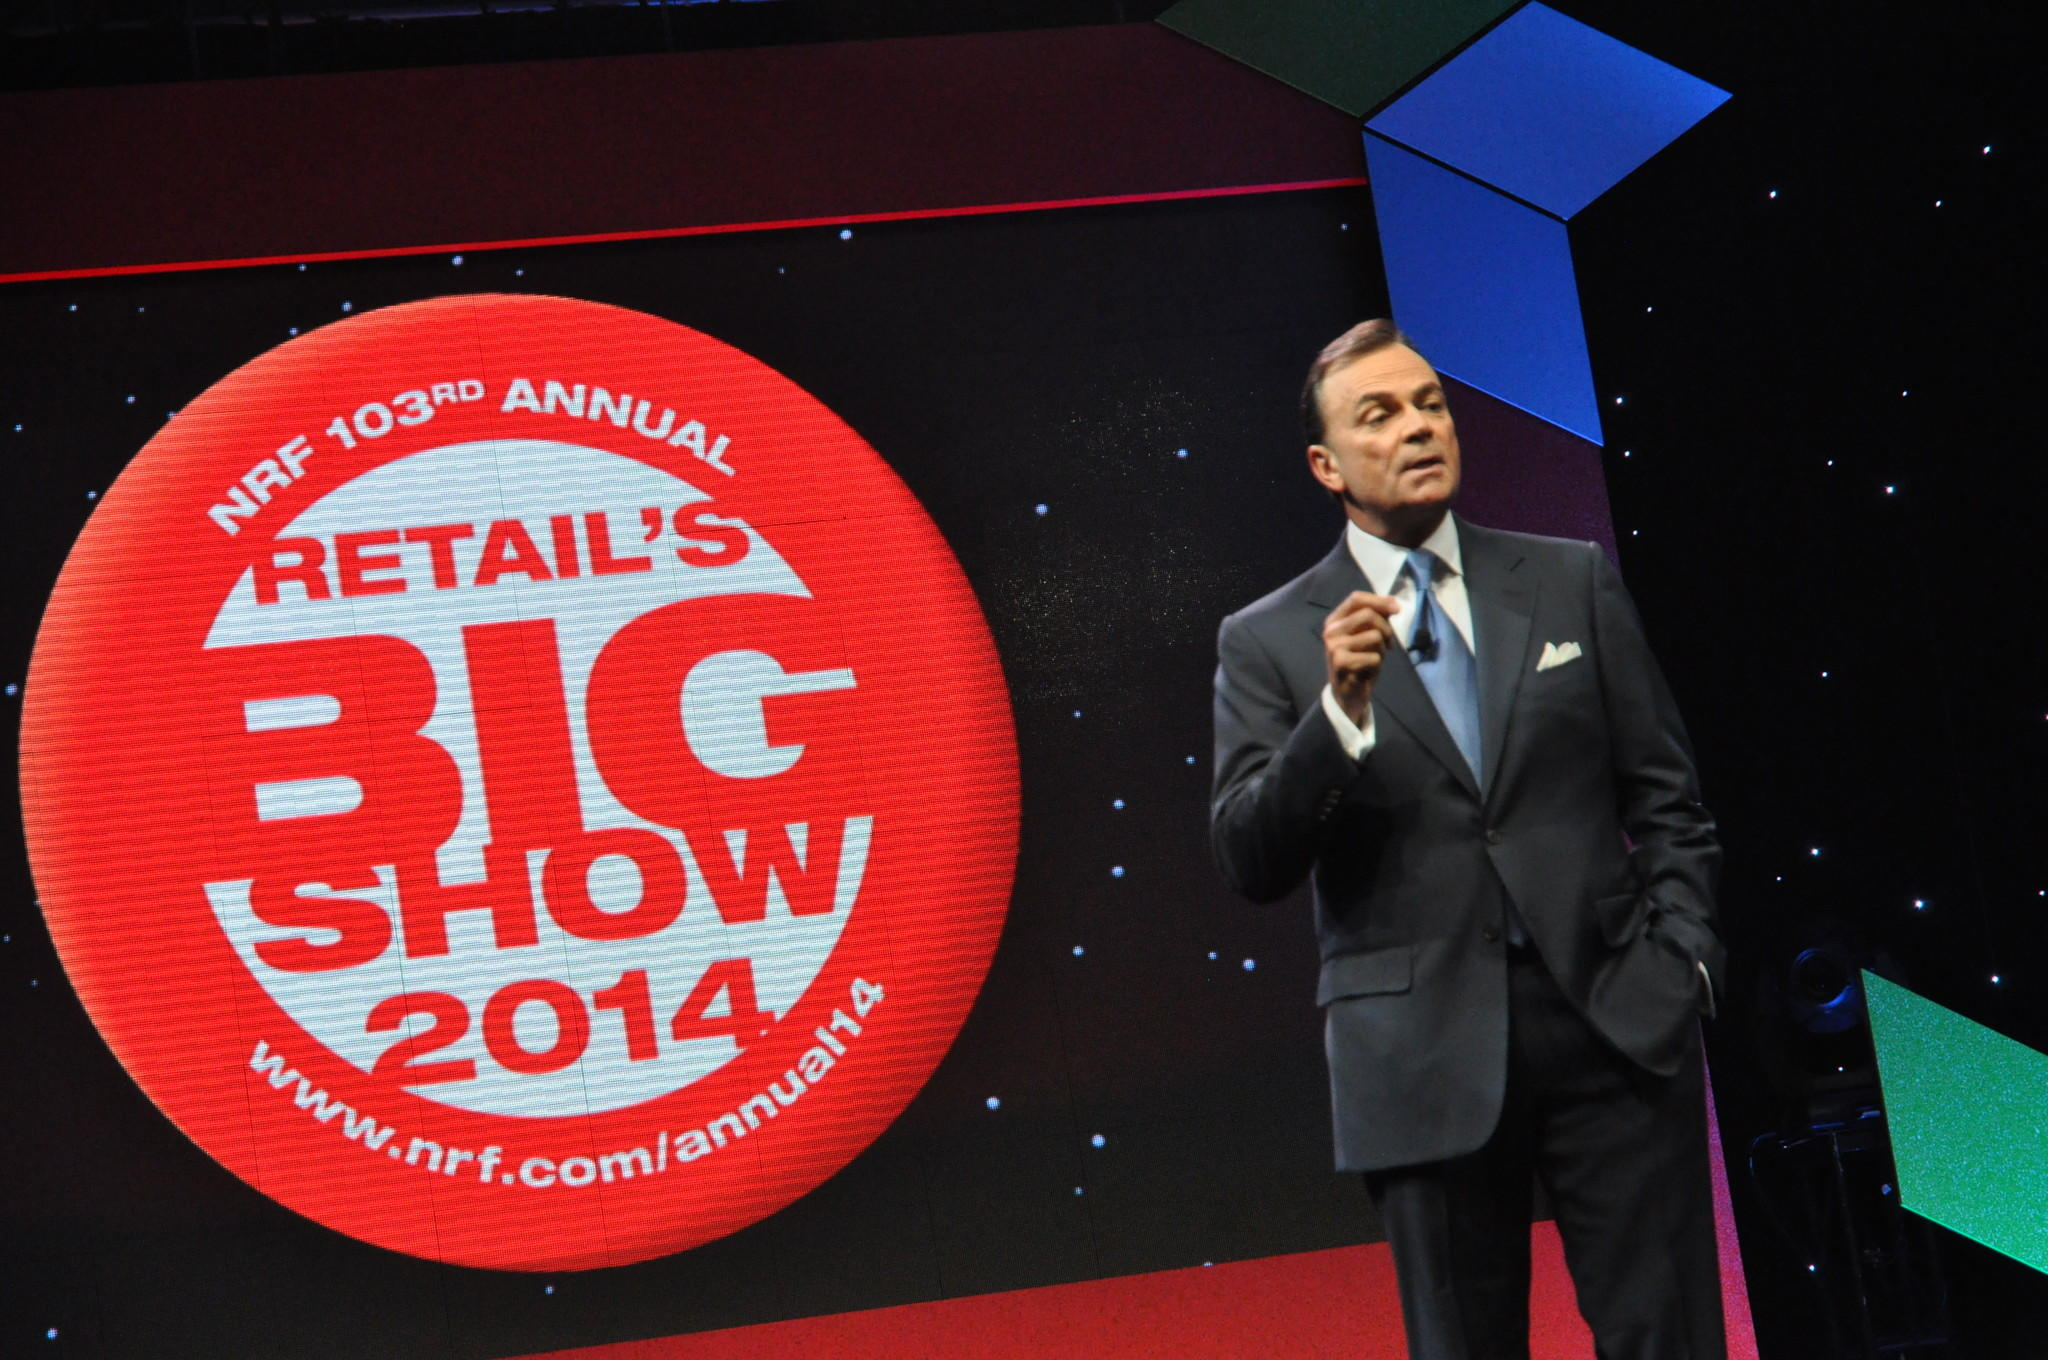 Grove mogul Rick Caruso talks about the future of malls at the National Retail Federation's convention in New York City.